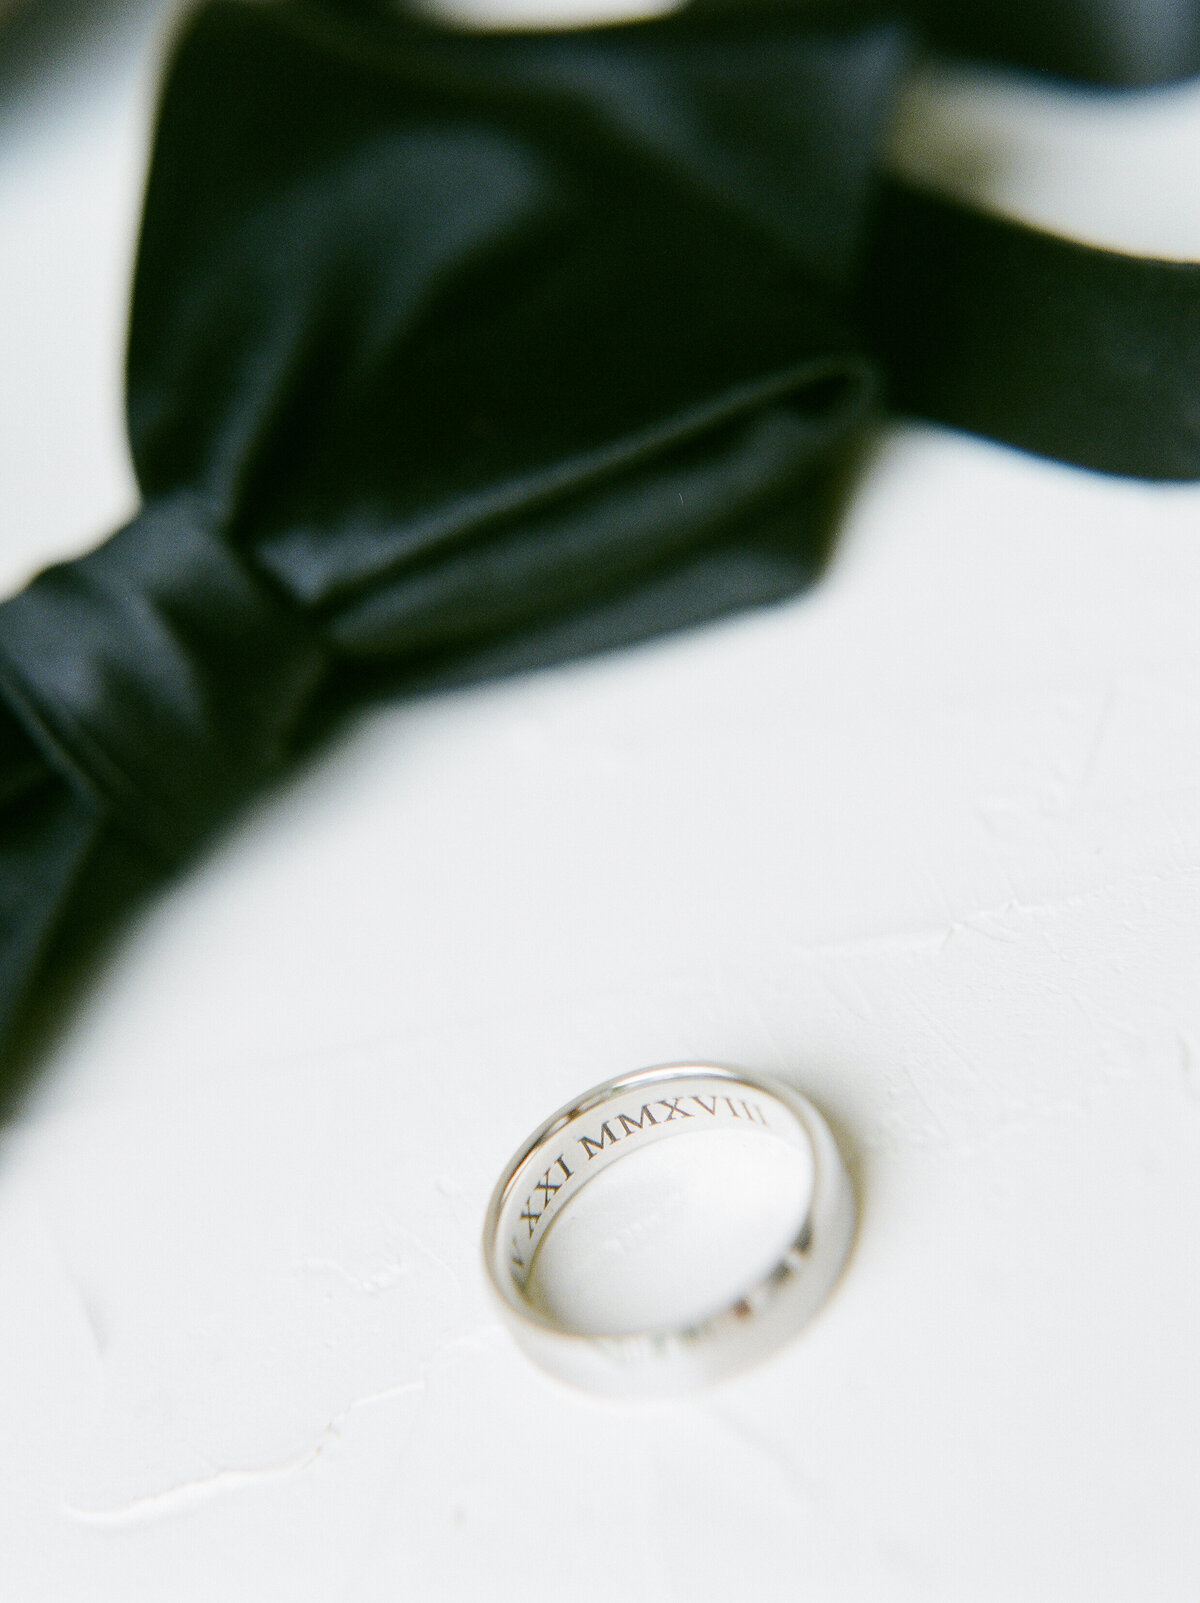 Groom's Ring - Engraved Wedding Ring